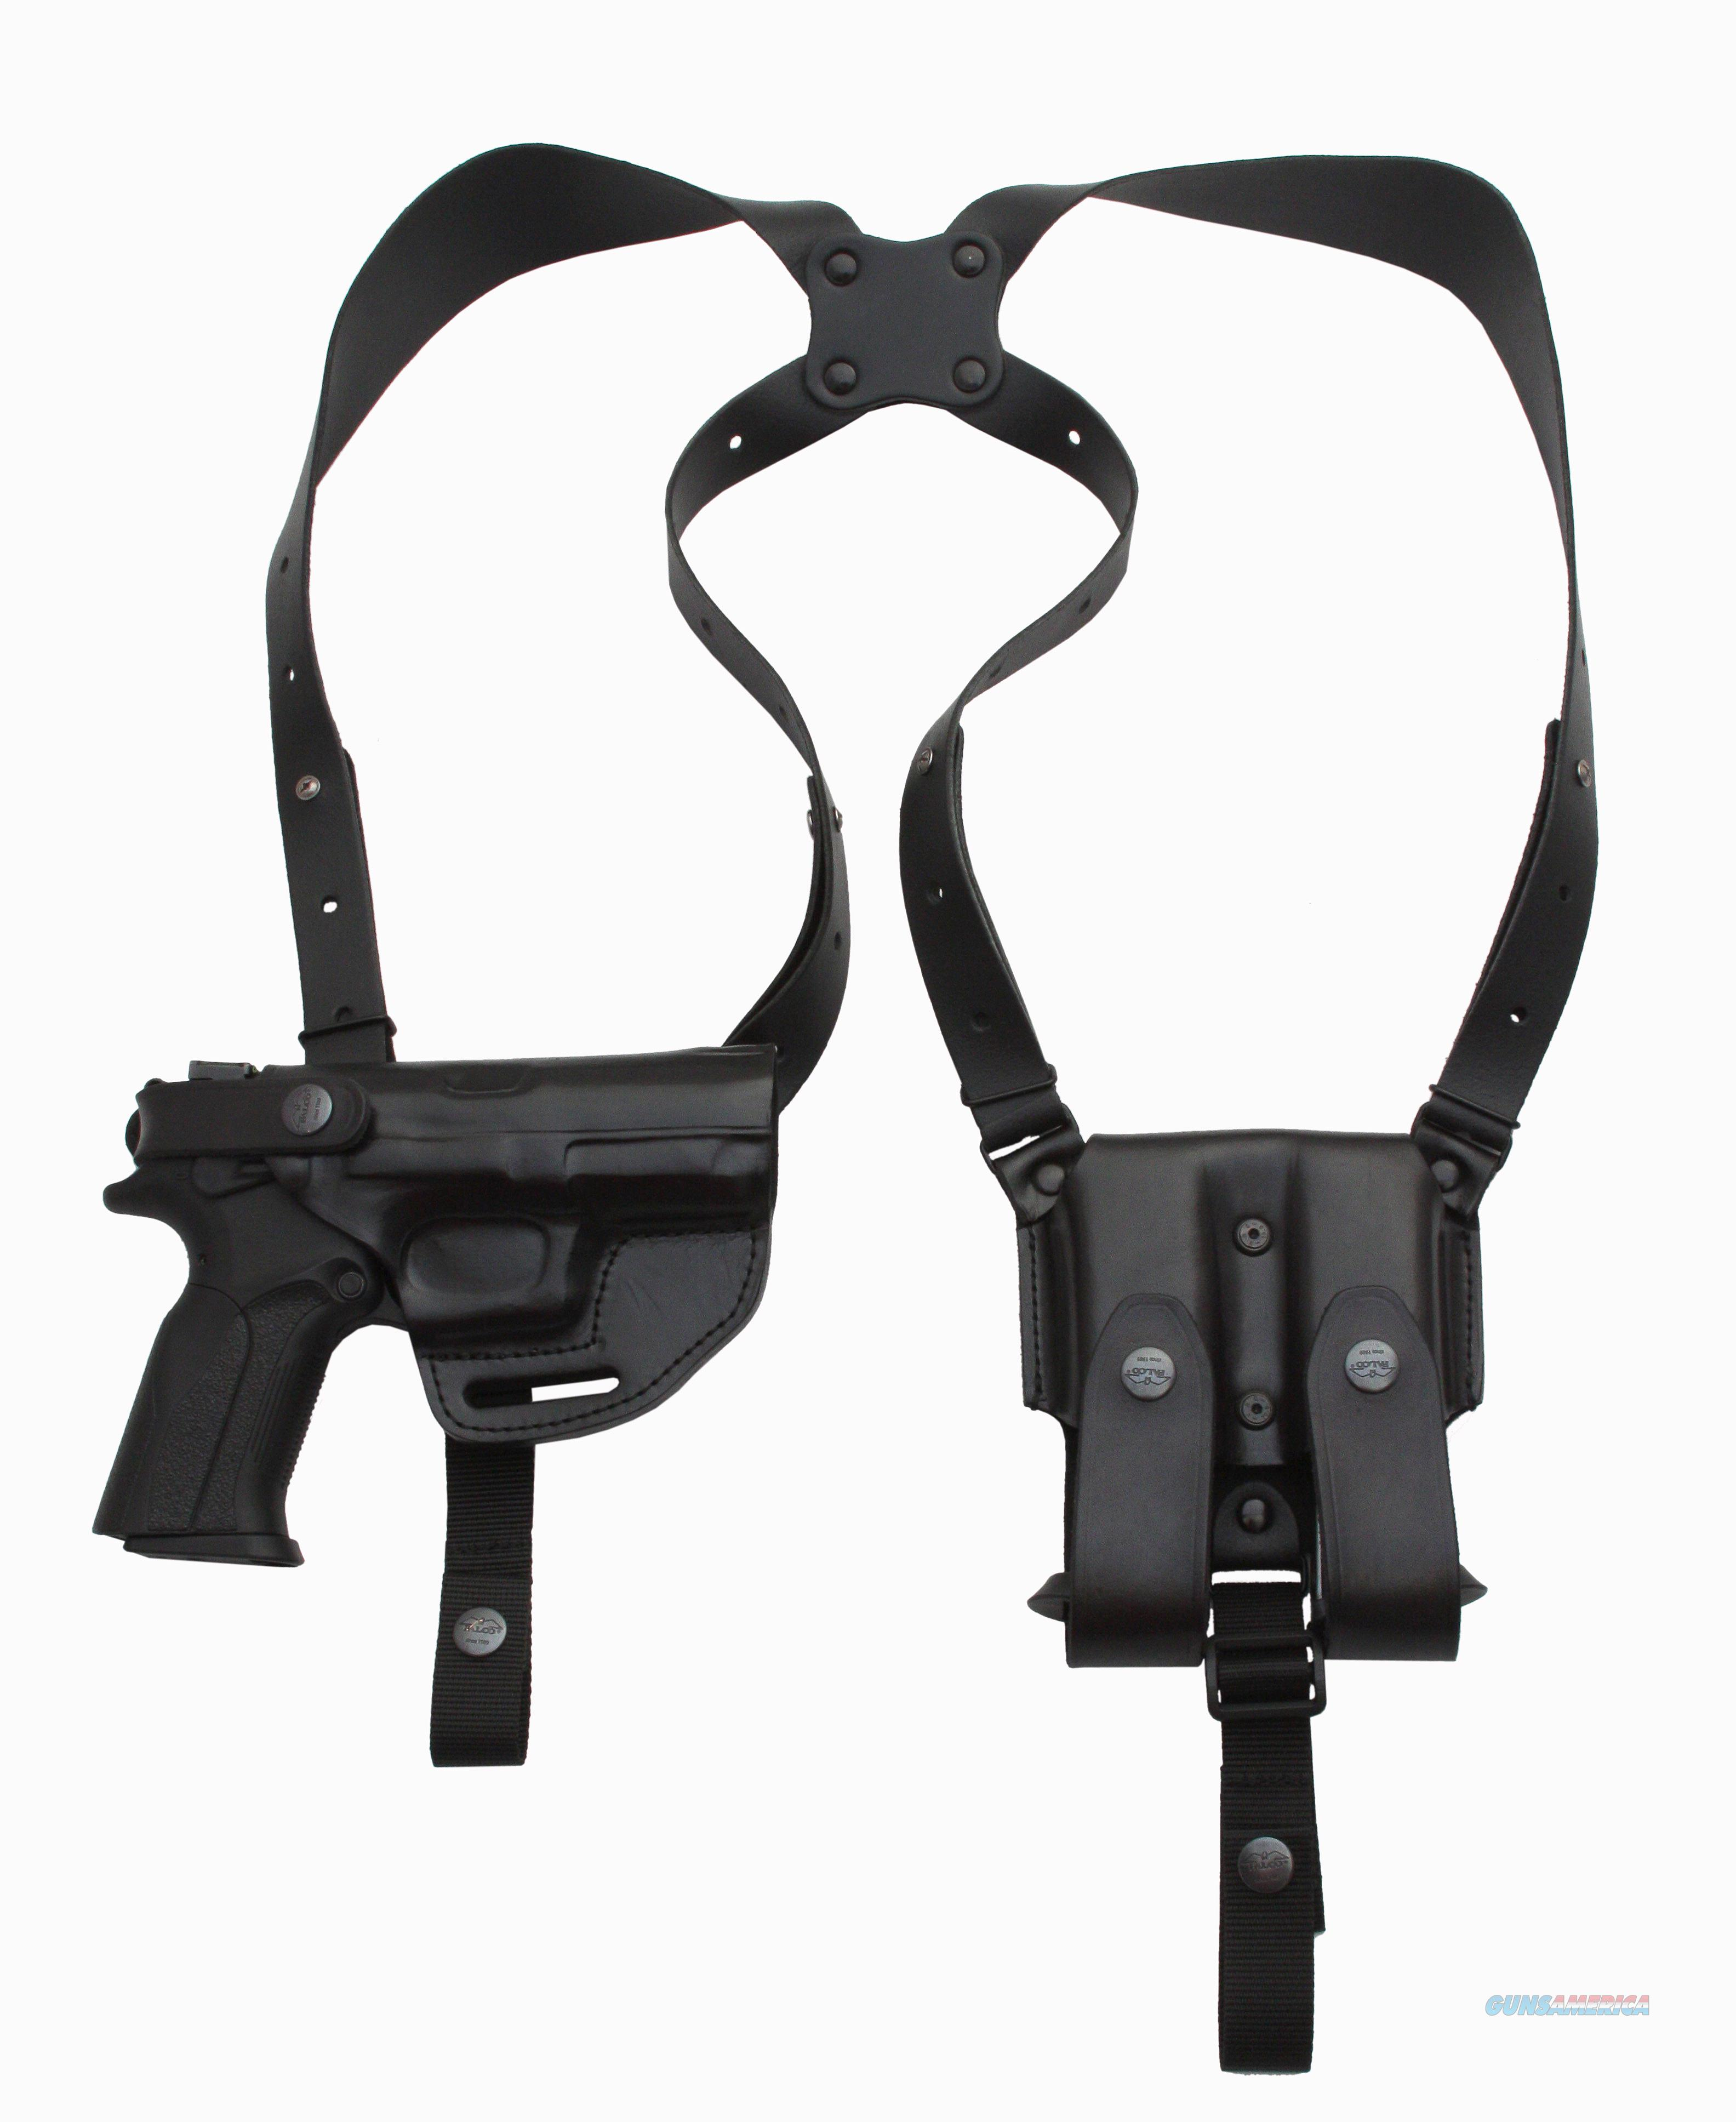 Leather Shoulder Holster System Beretta PX4 Compact  Non-Guns > Holsters and Gunleather > Shoulder Holsters